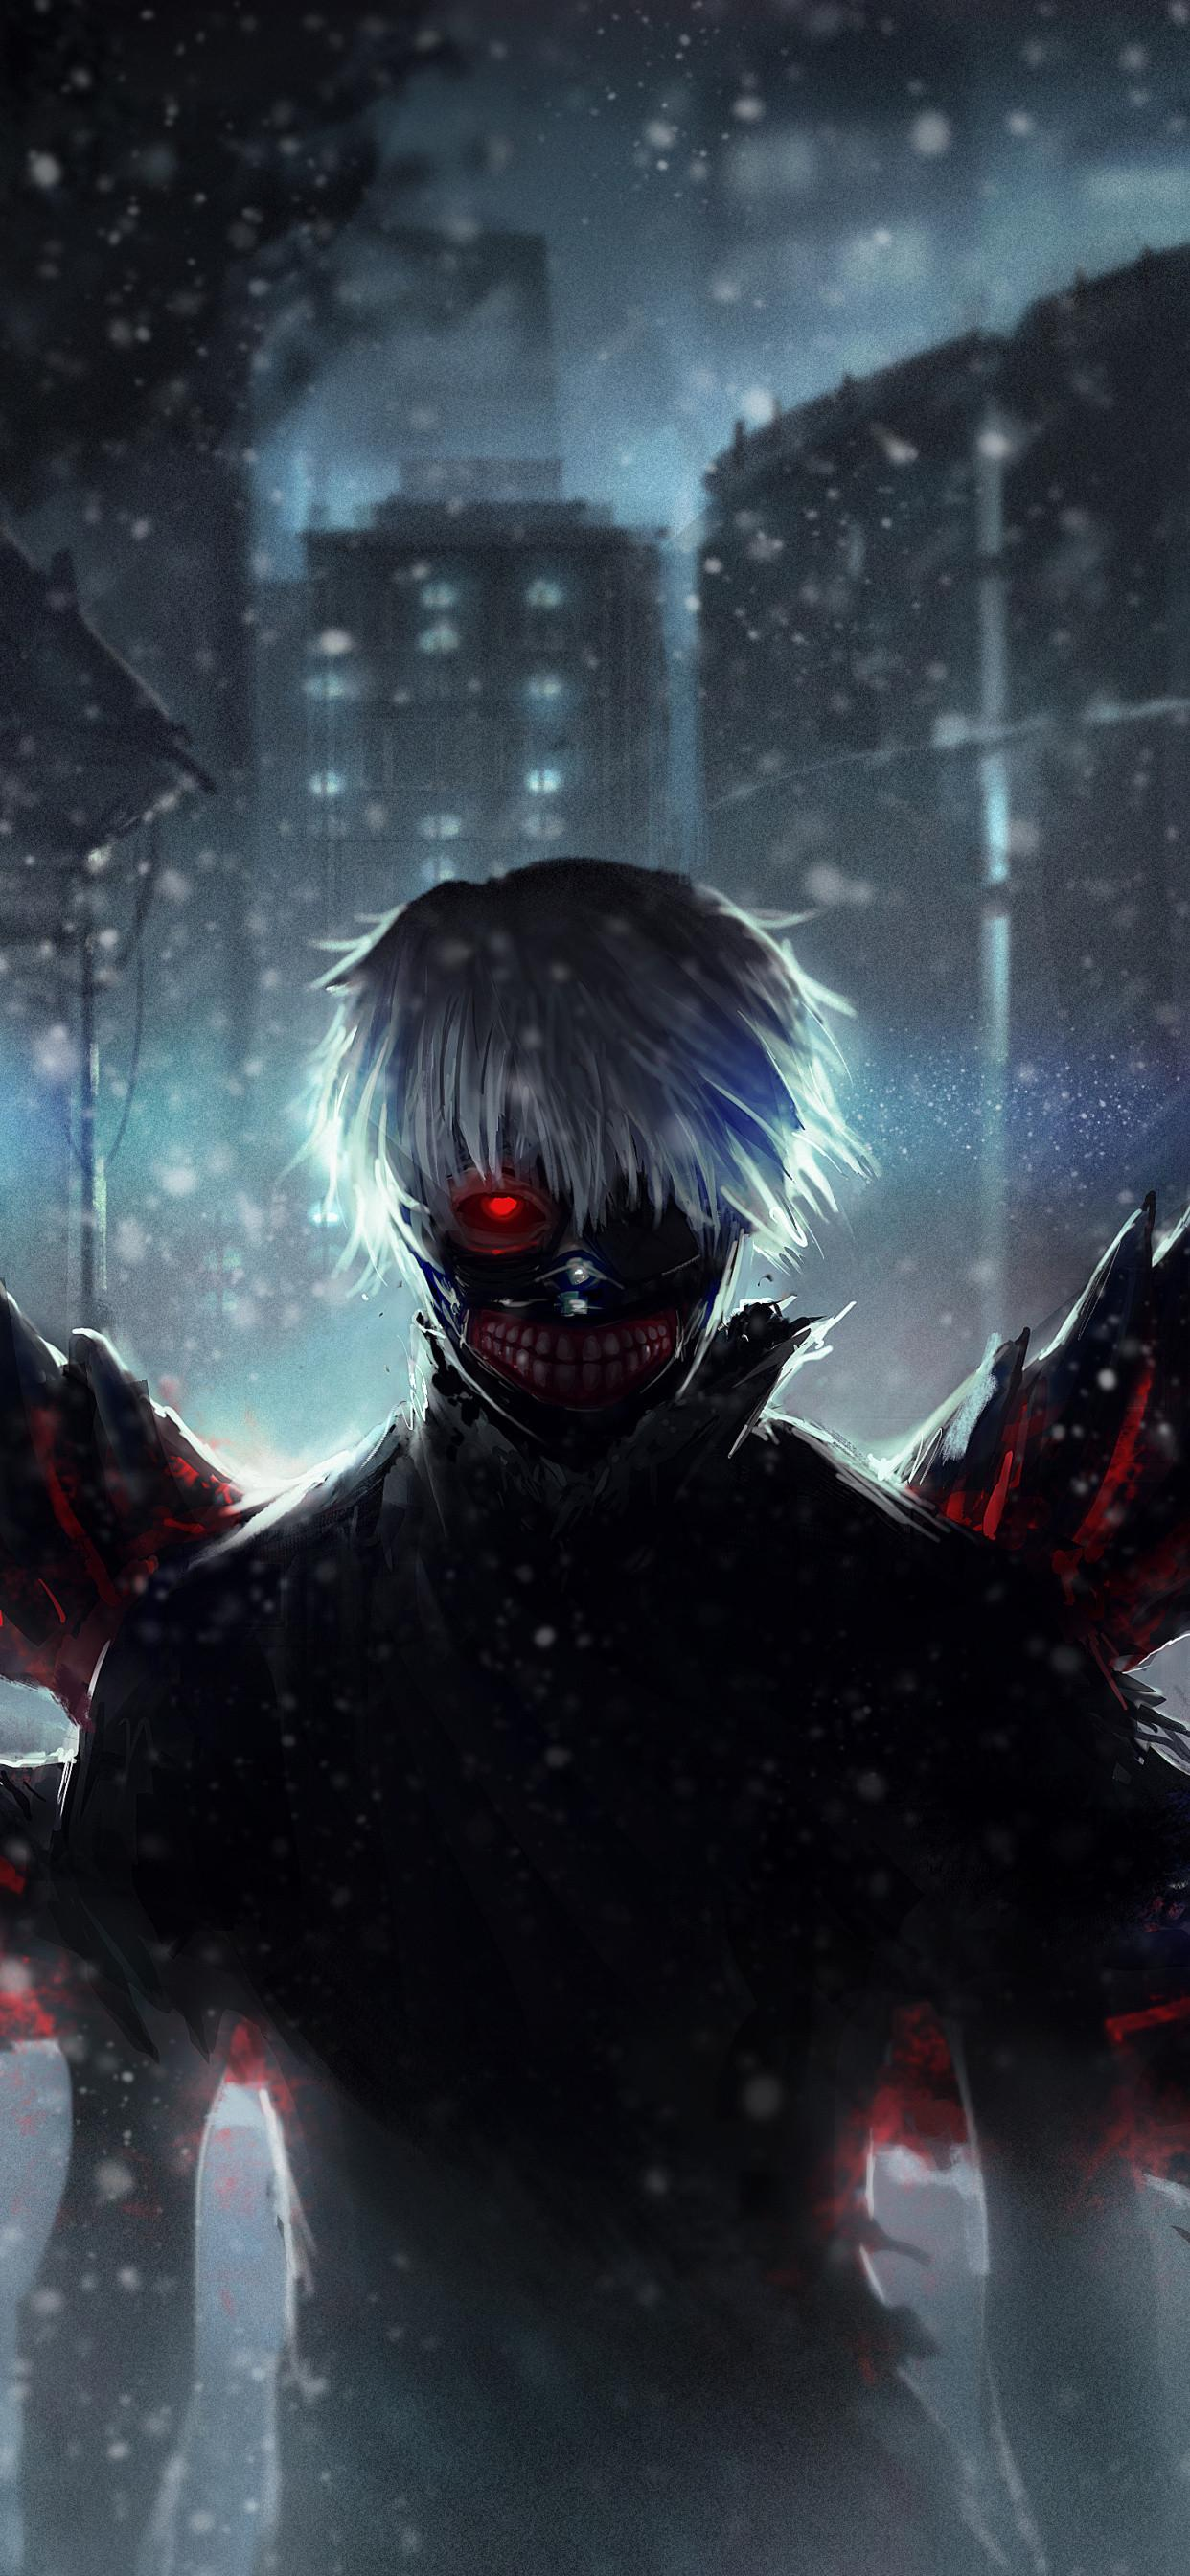 Cool Anime Good Wallpapers - Wallpaper Cave